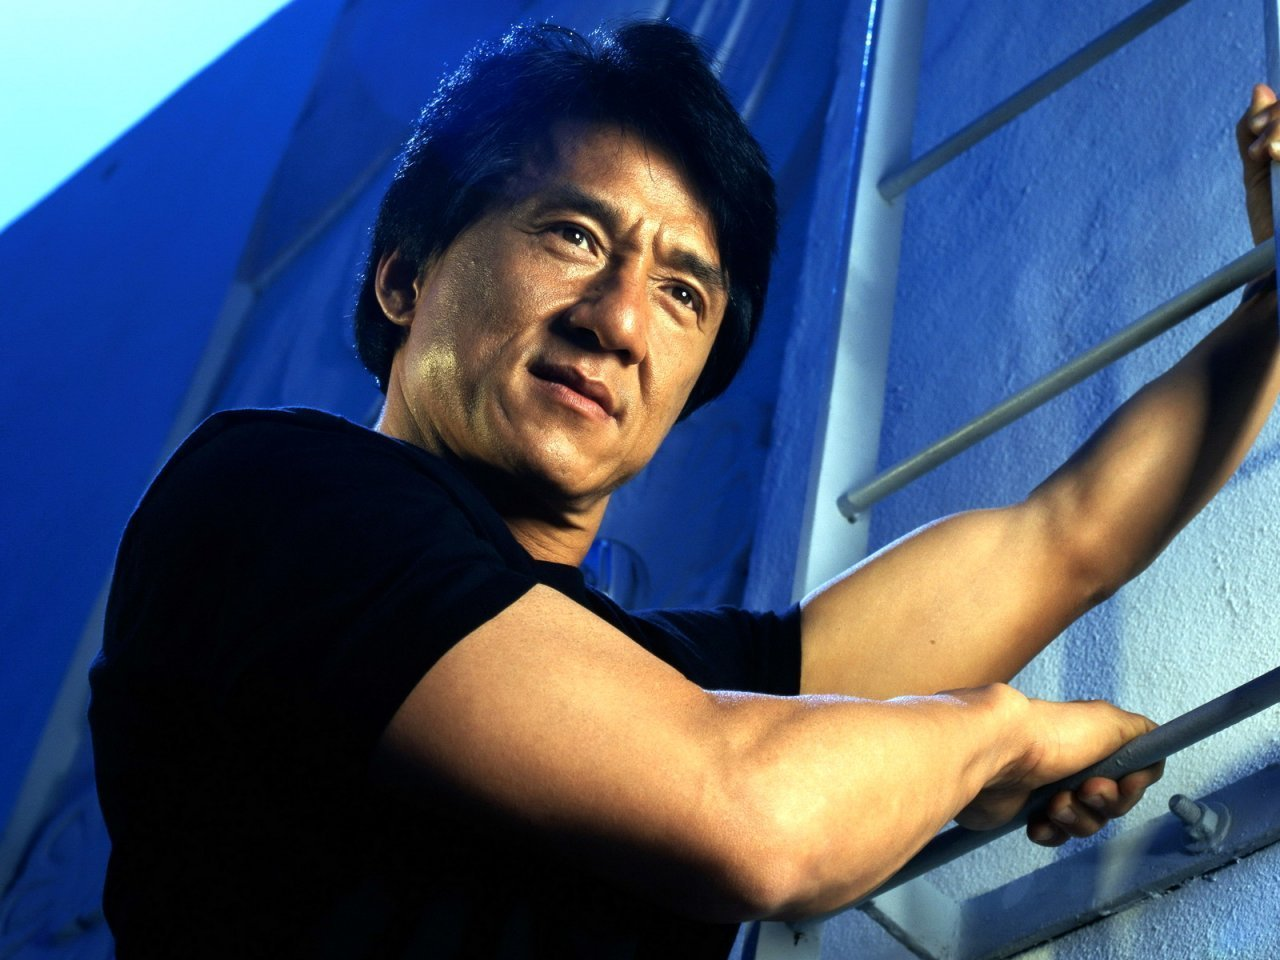 <span><b class=sec>Jackie Chan</b> - Awards - IMDb</span>